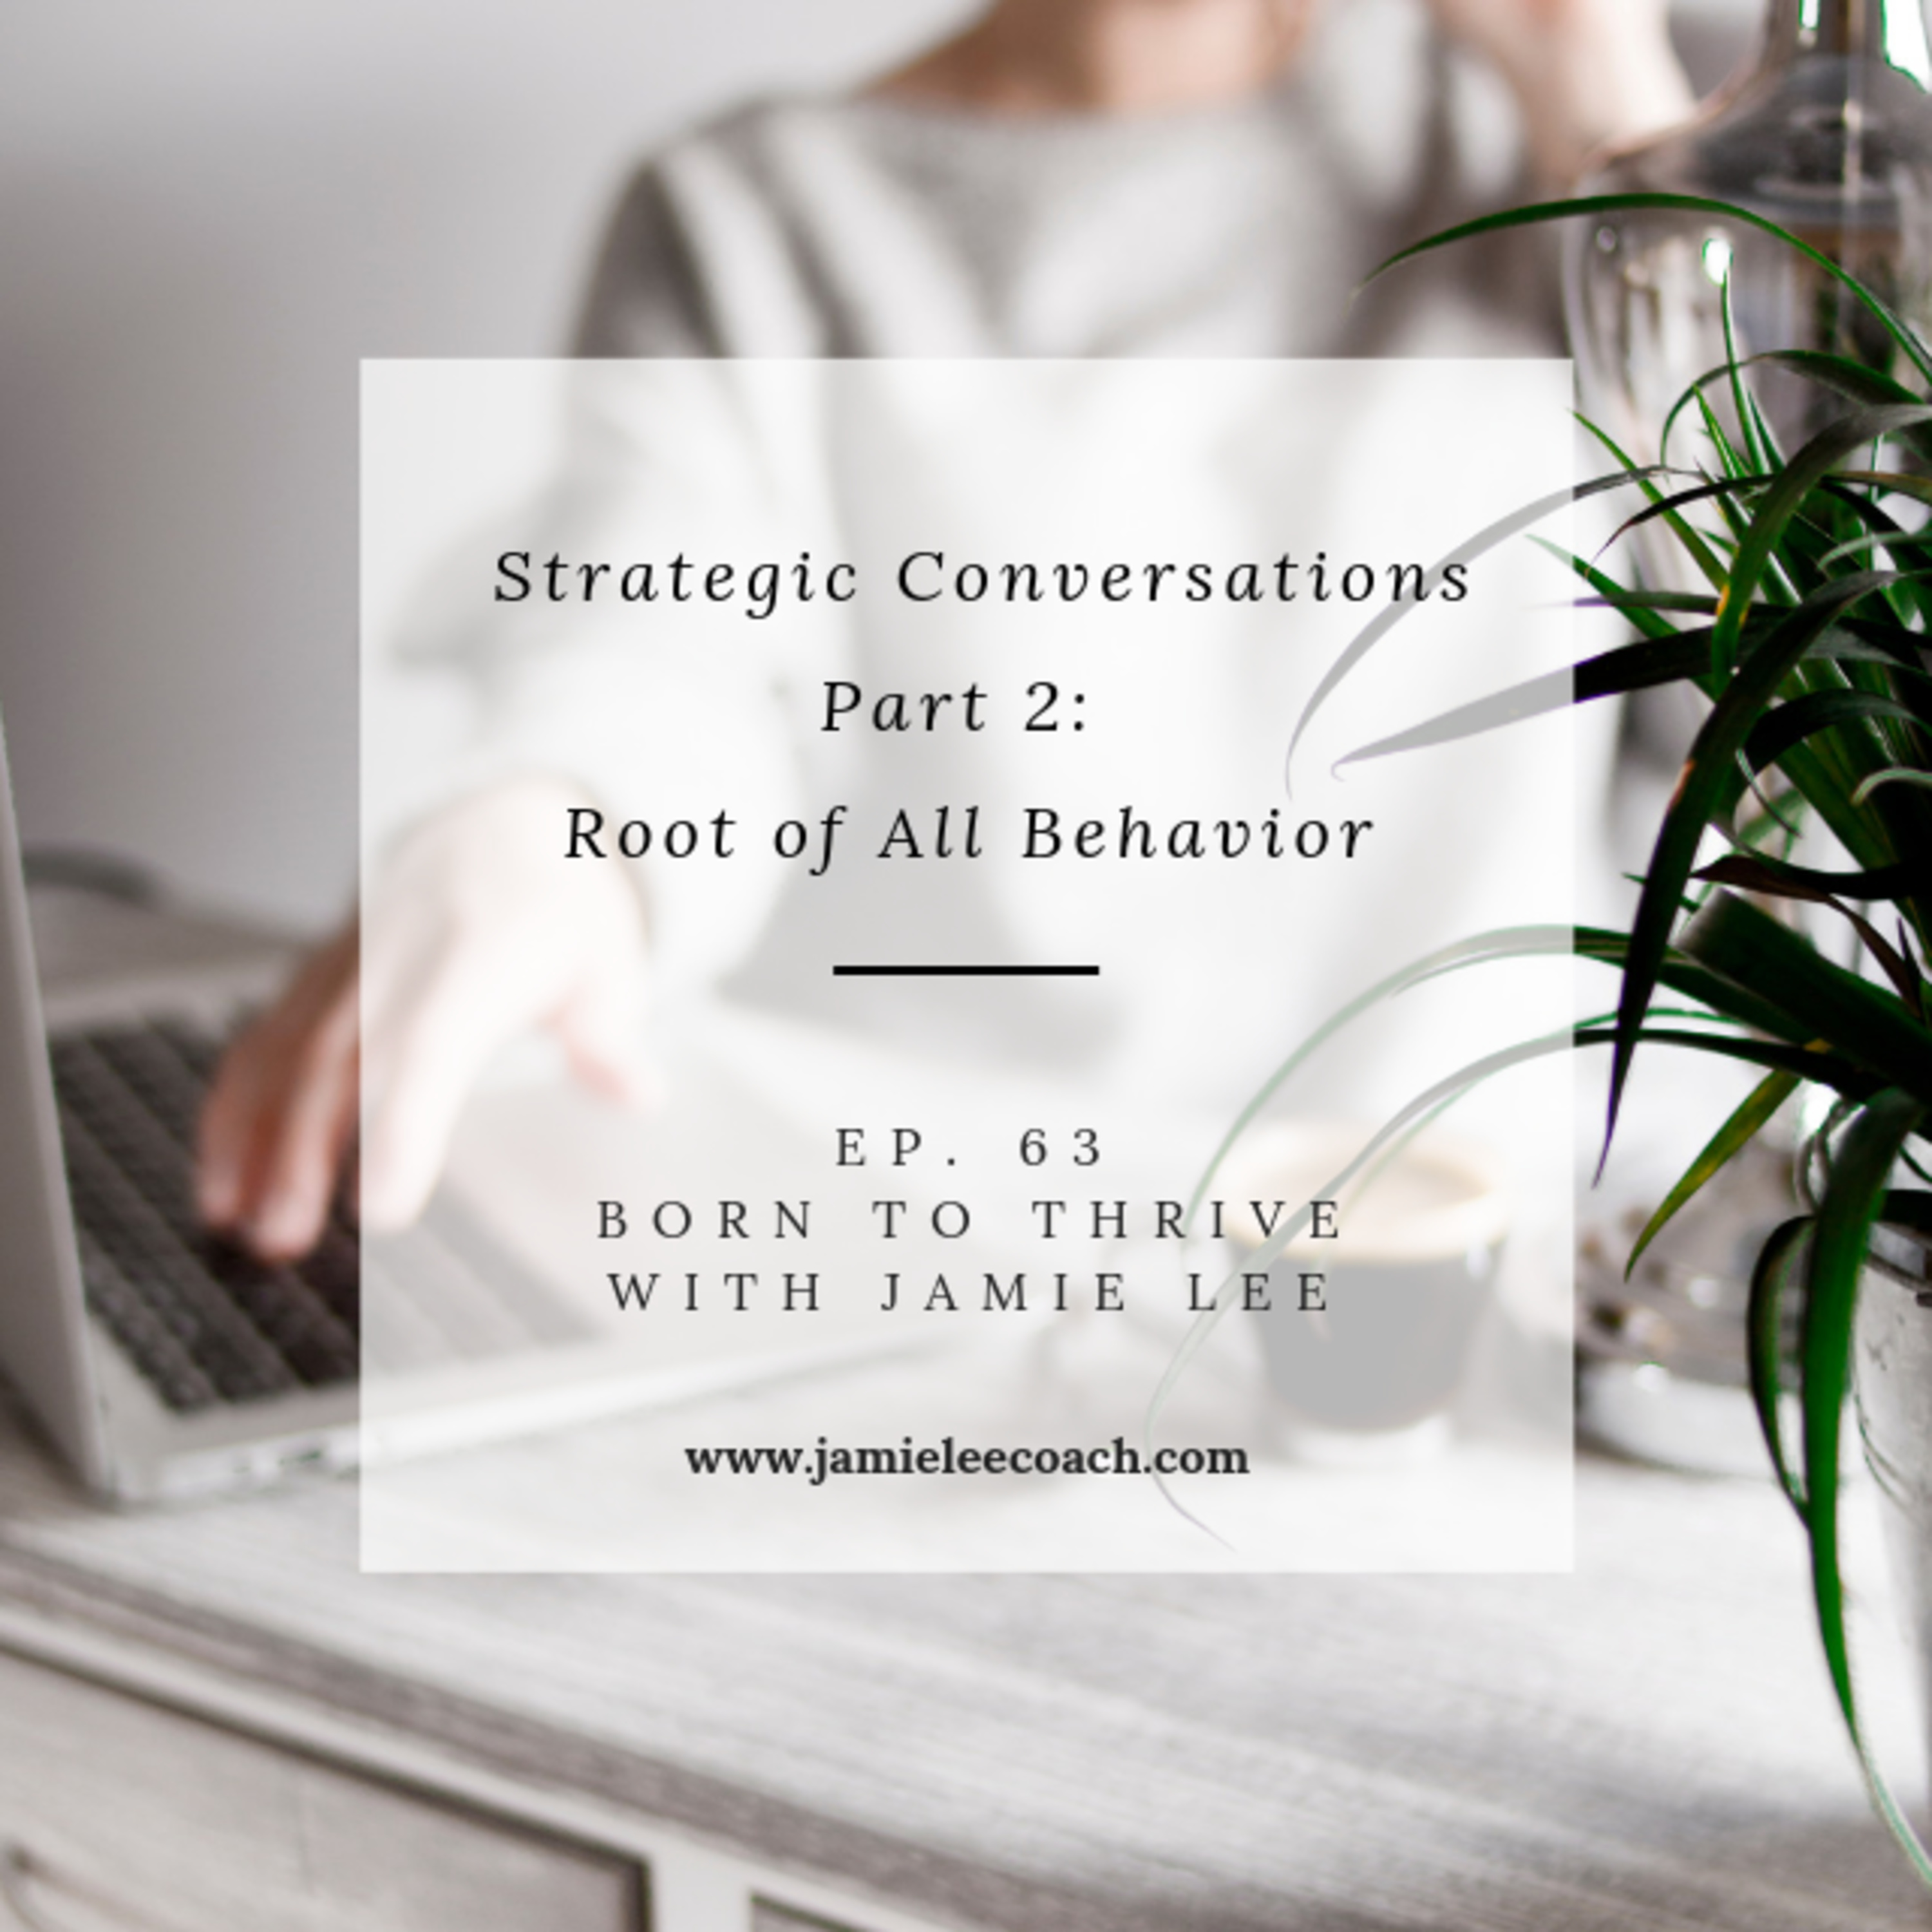 Ep 63. Strategic Conversations Part 2: Root of All Behavior